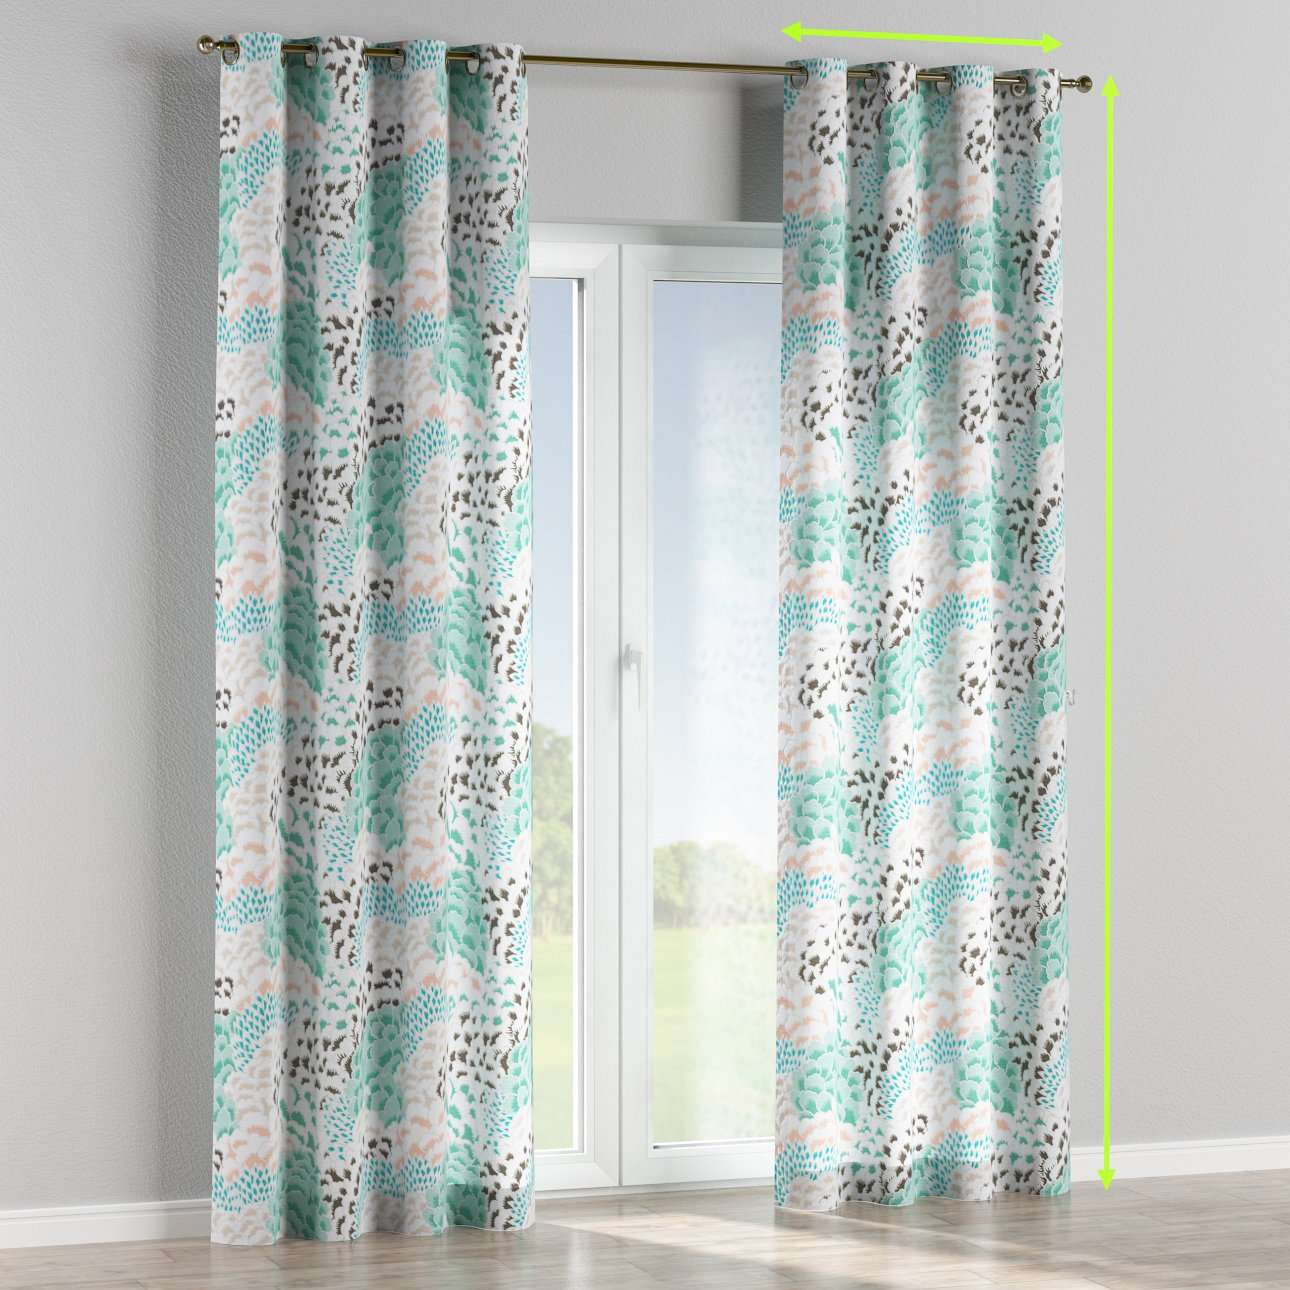 Eyelet curtains in collection Brooklyn, fabric: 137-89